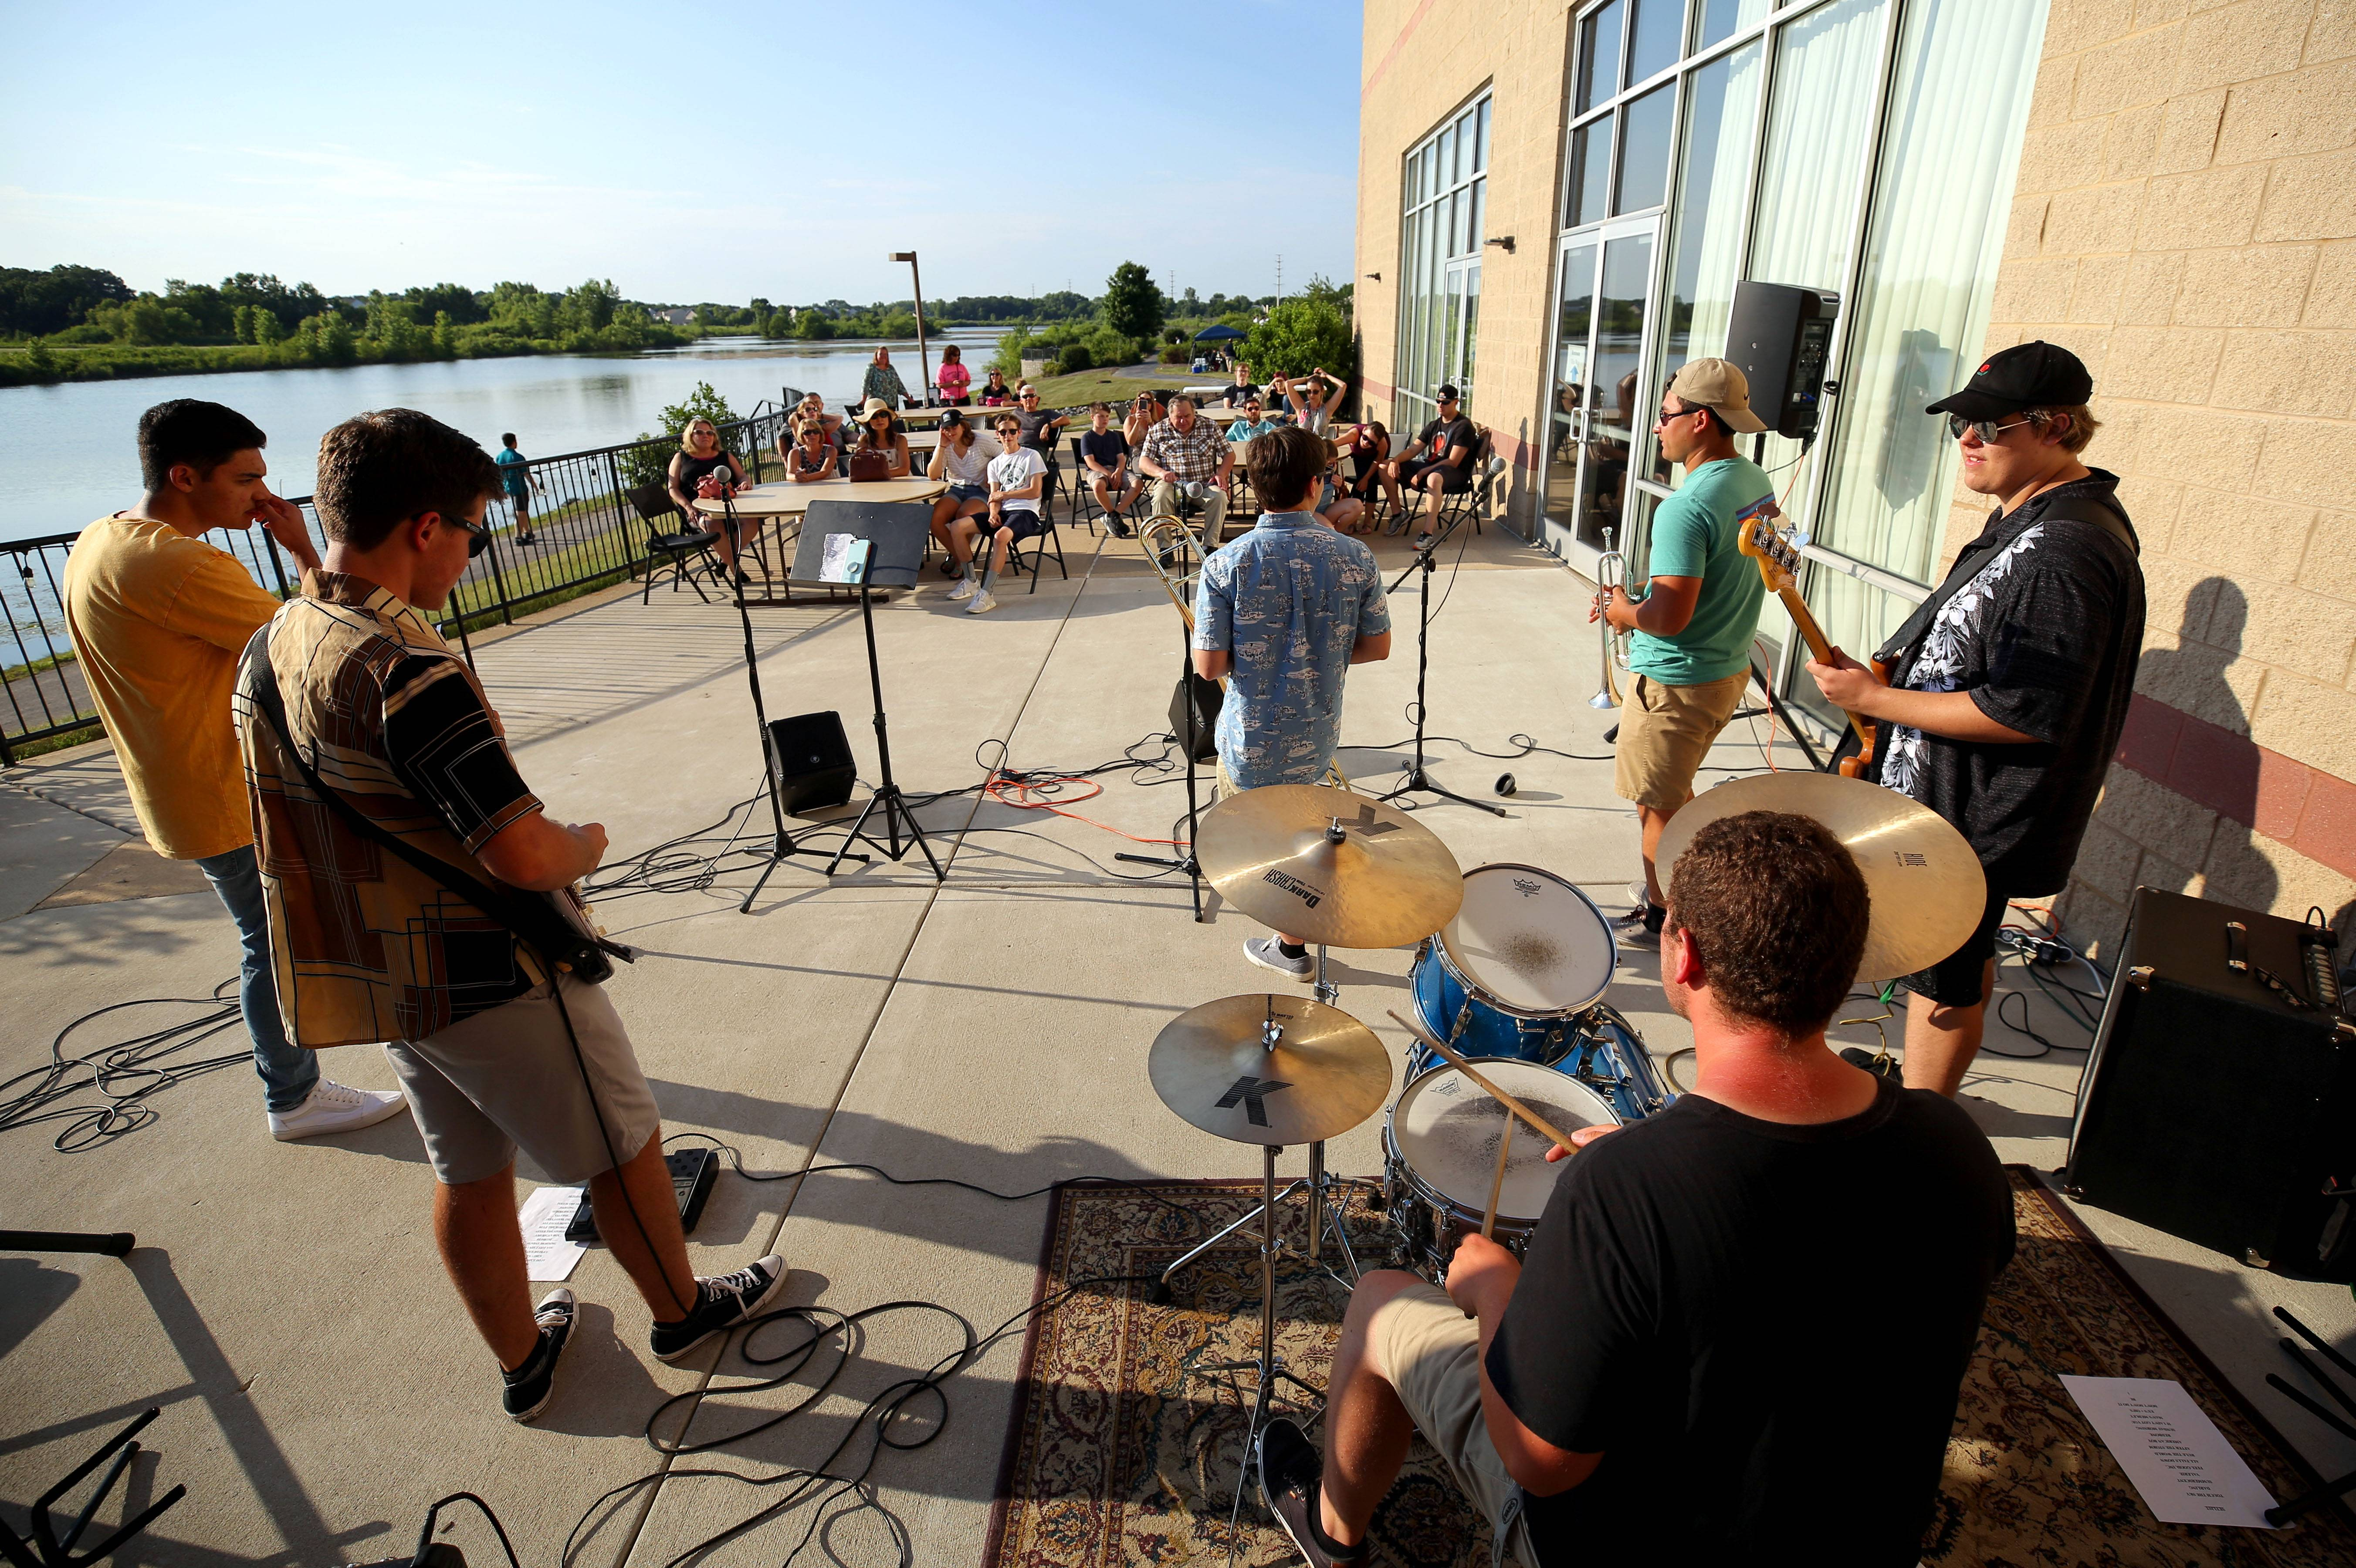 The band Better Than The Last Time entertains Wednesday on the veranda during the Midweek Break on the Lake at the Round Lake Beach Cultural Center.